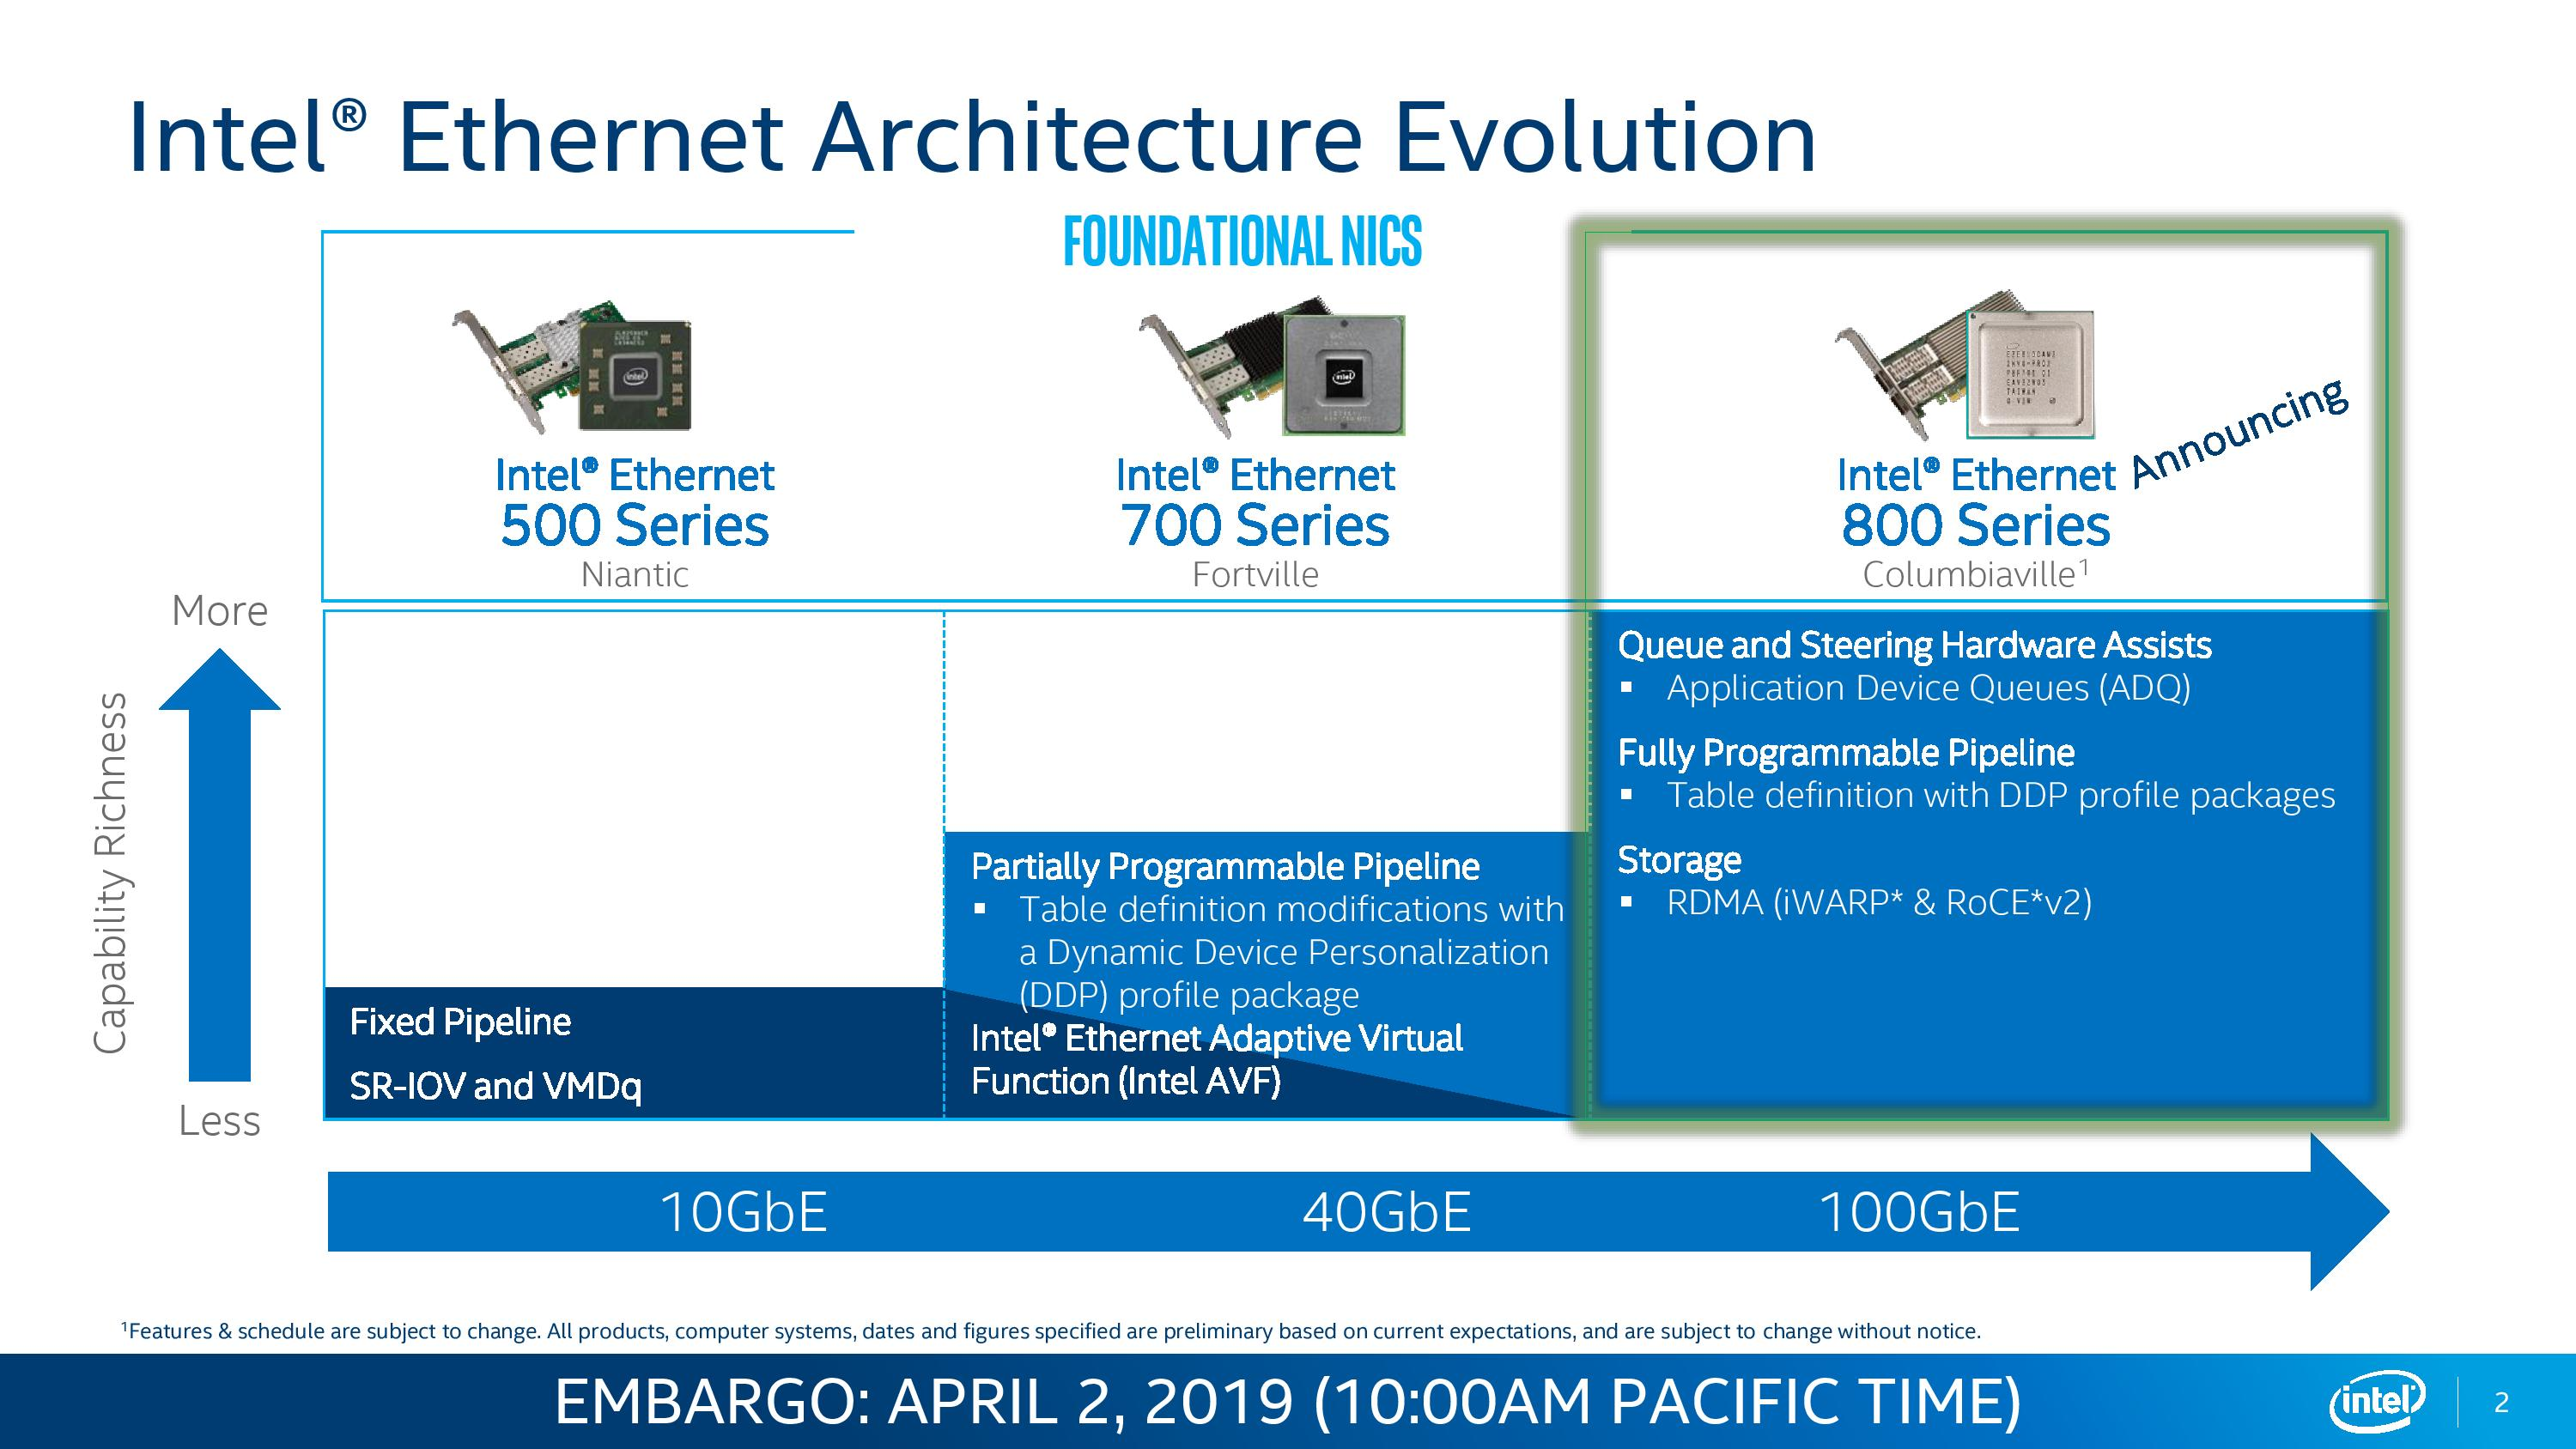 Intel Columbiaville: 800 Series Ethernet at 100G, with ADQ and DDP